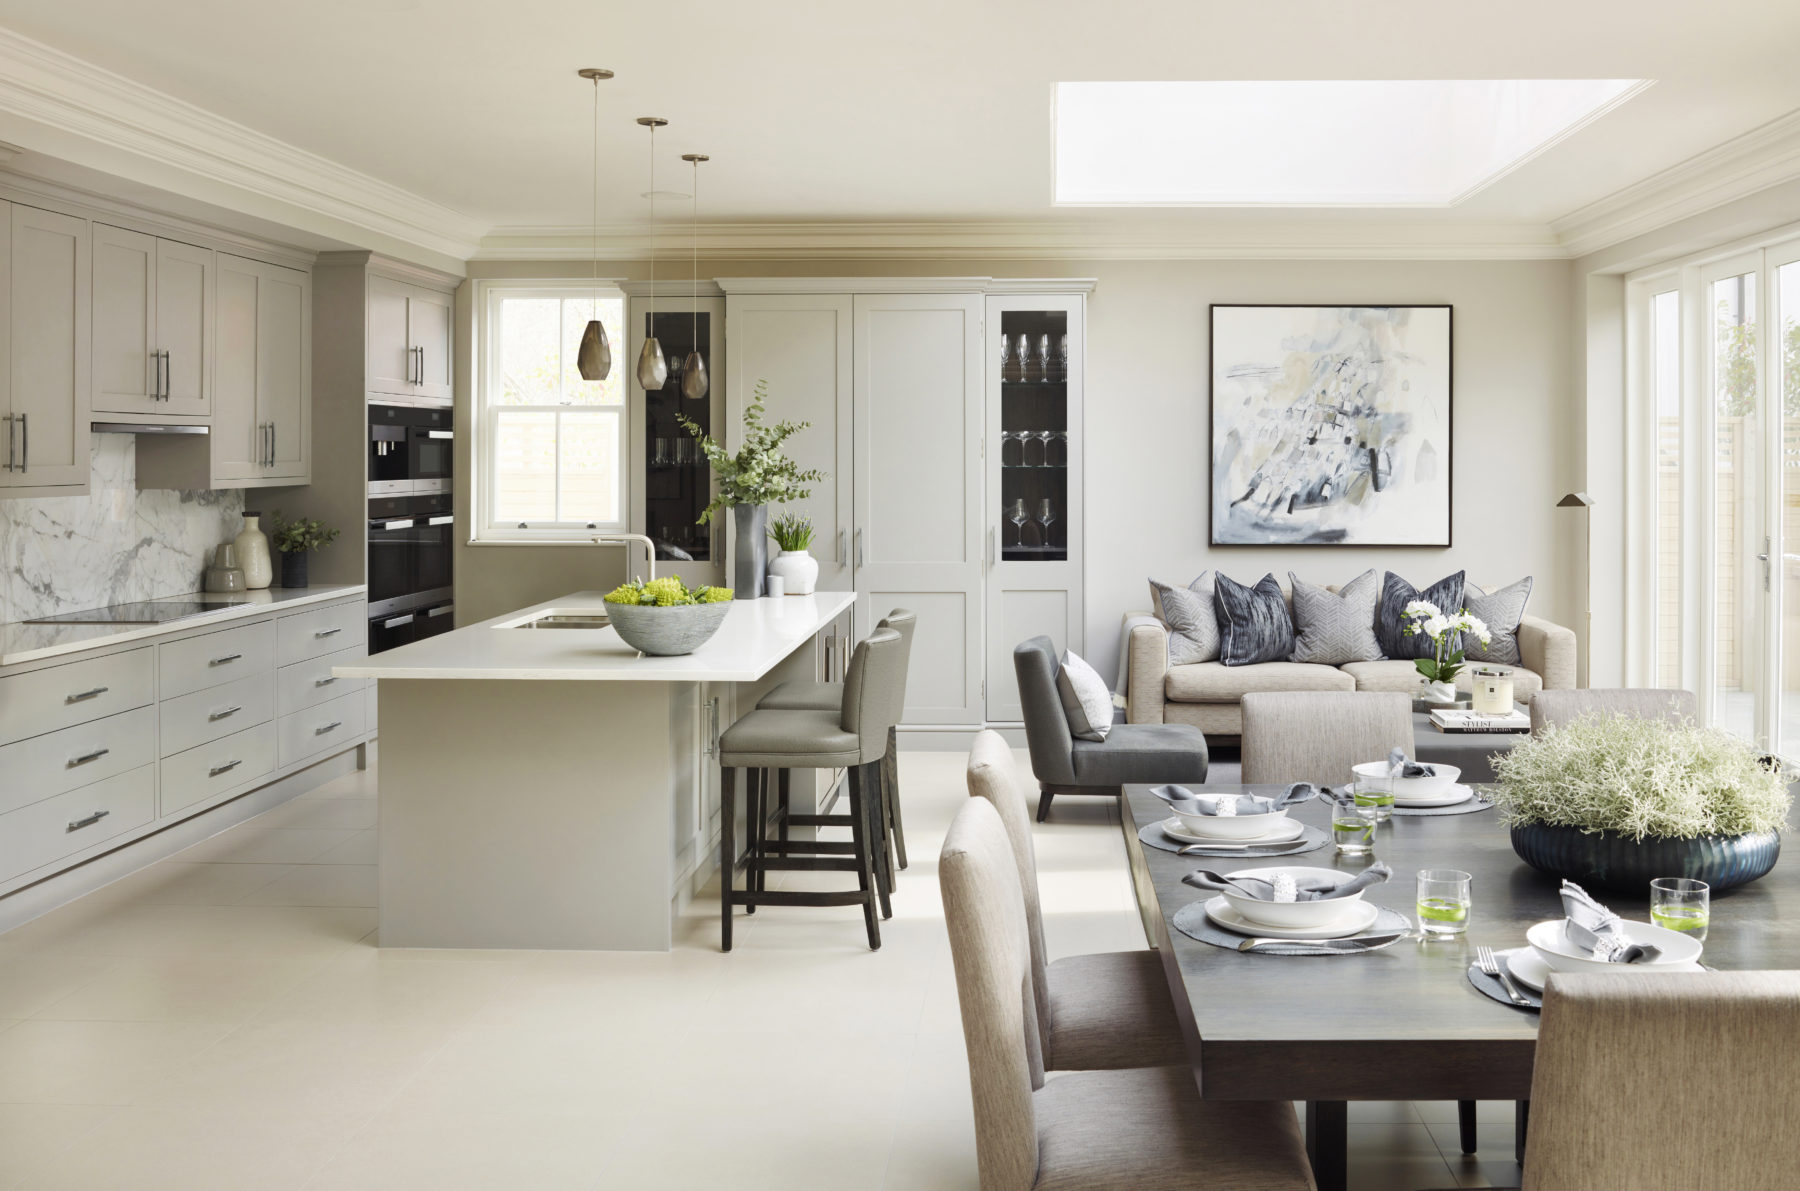 Sophie Paterson Design Advice - Open Plan